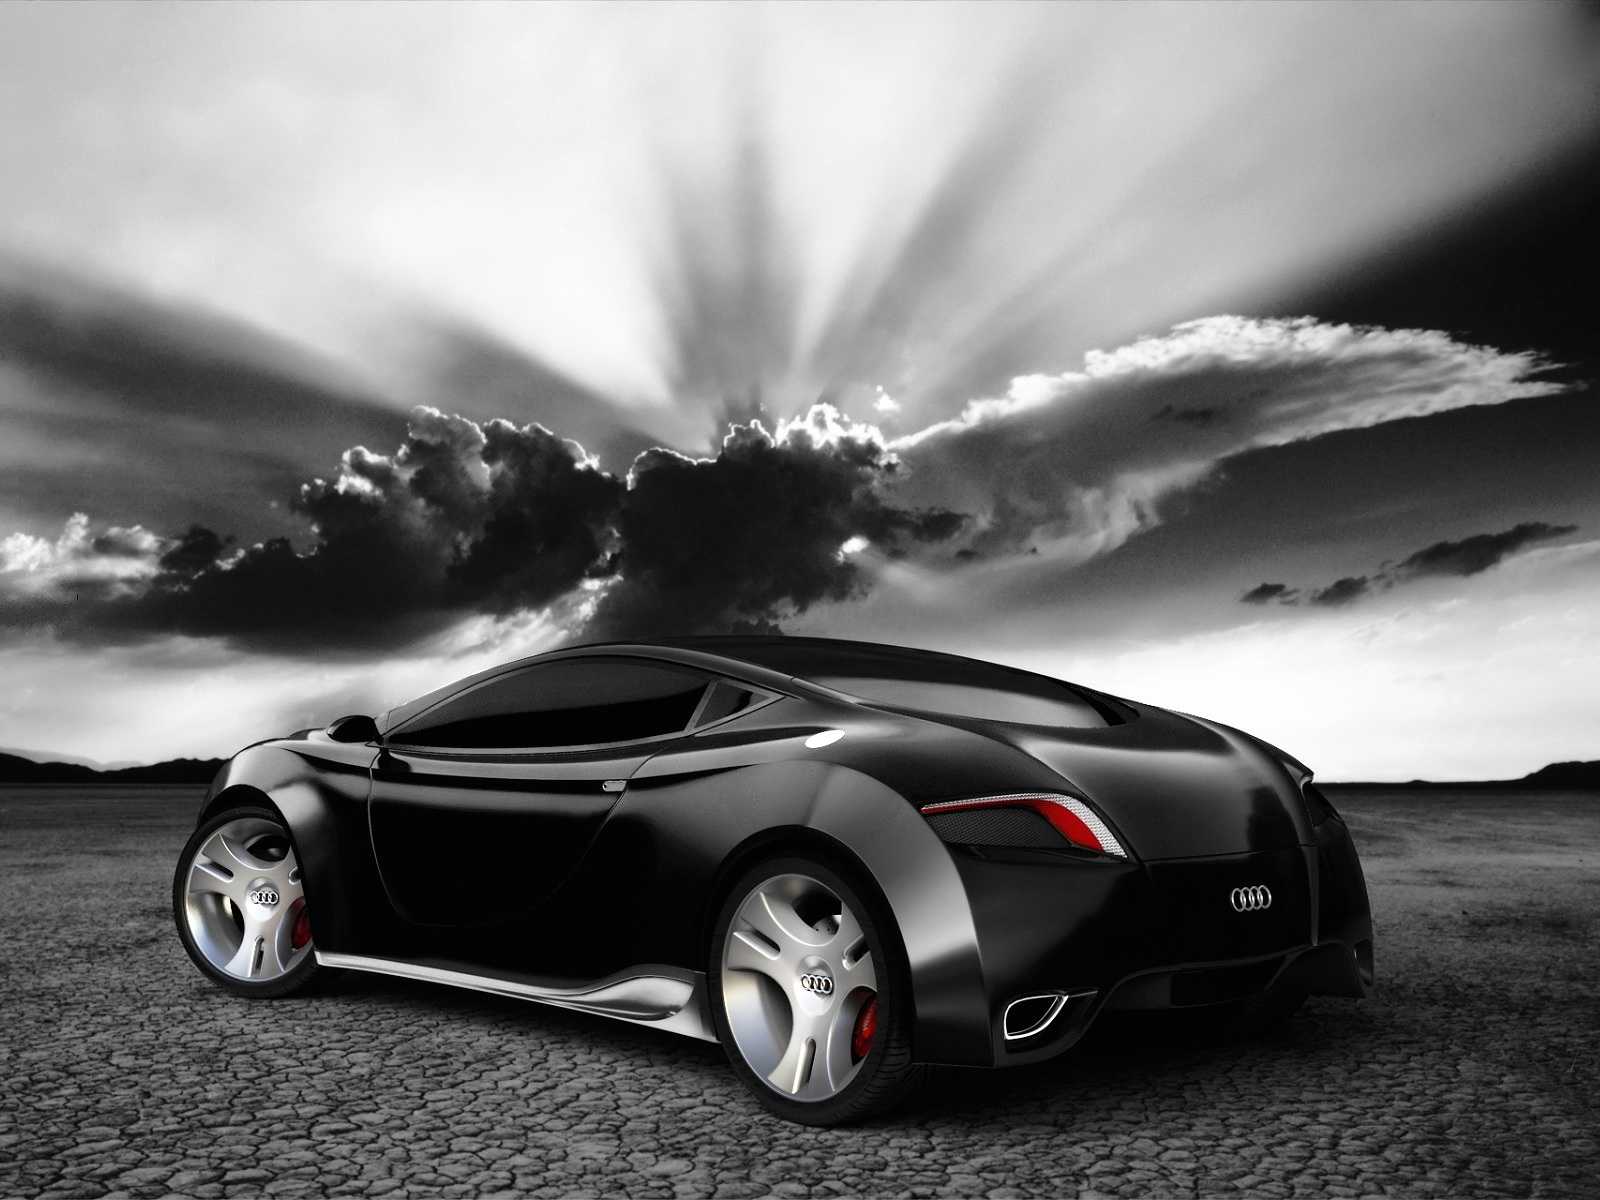 Hd Cool Car Wallpapers